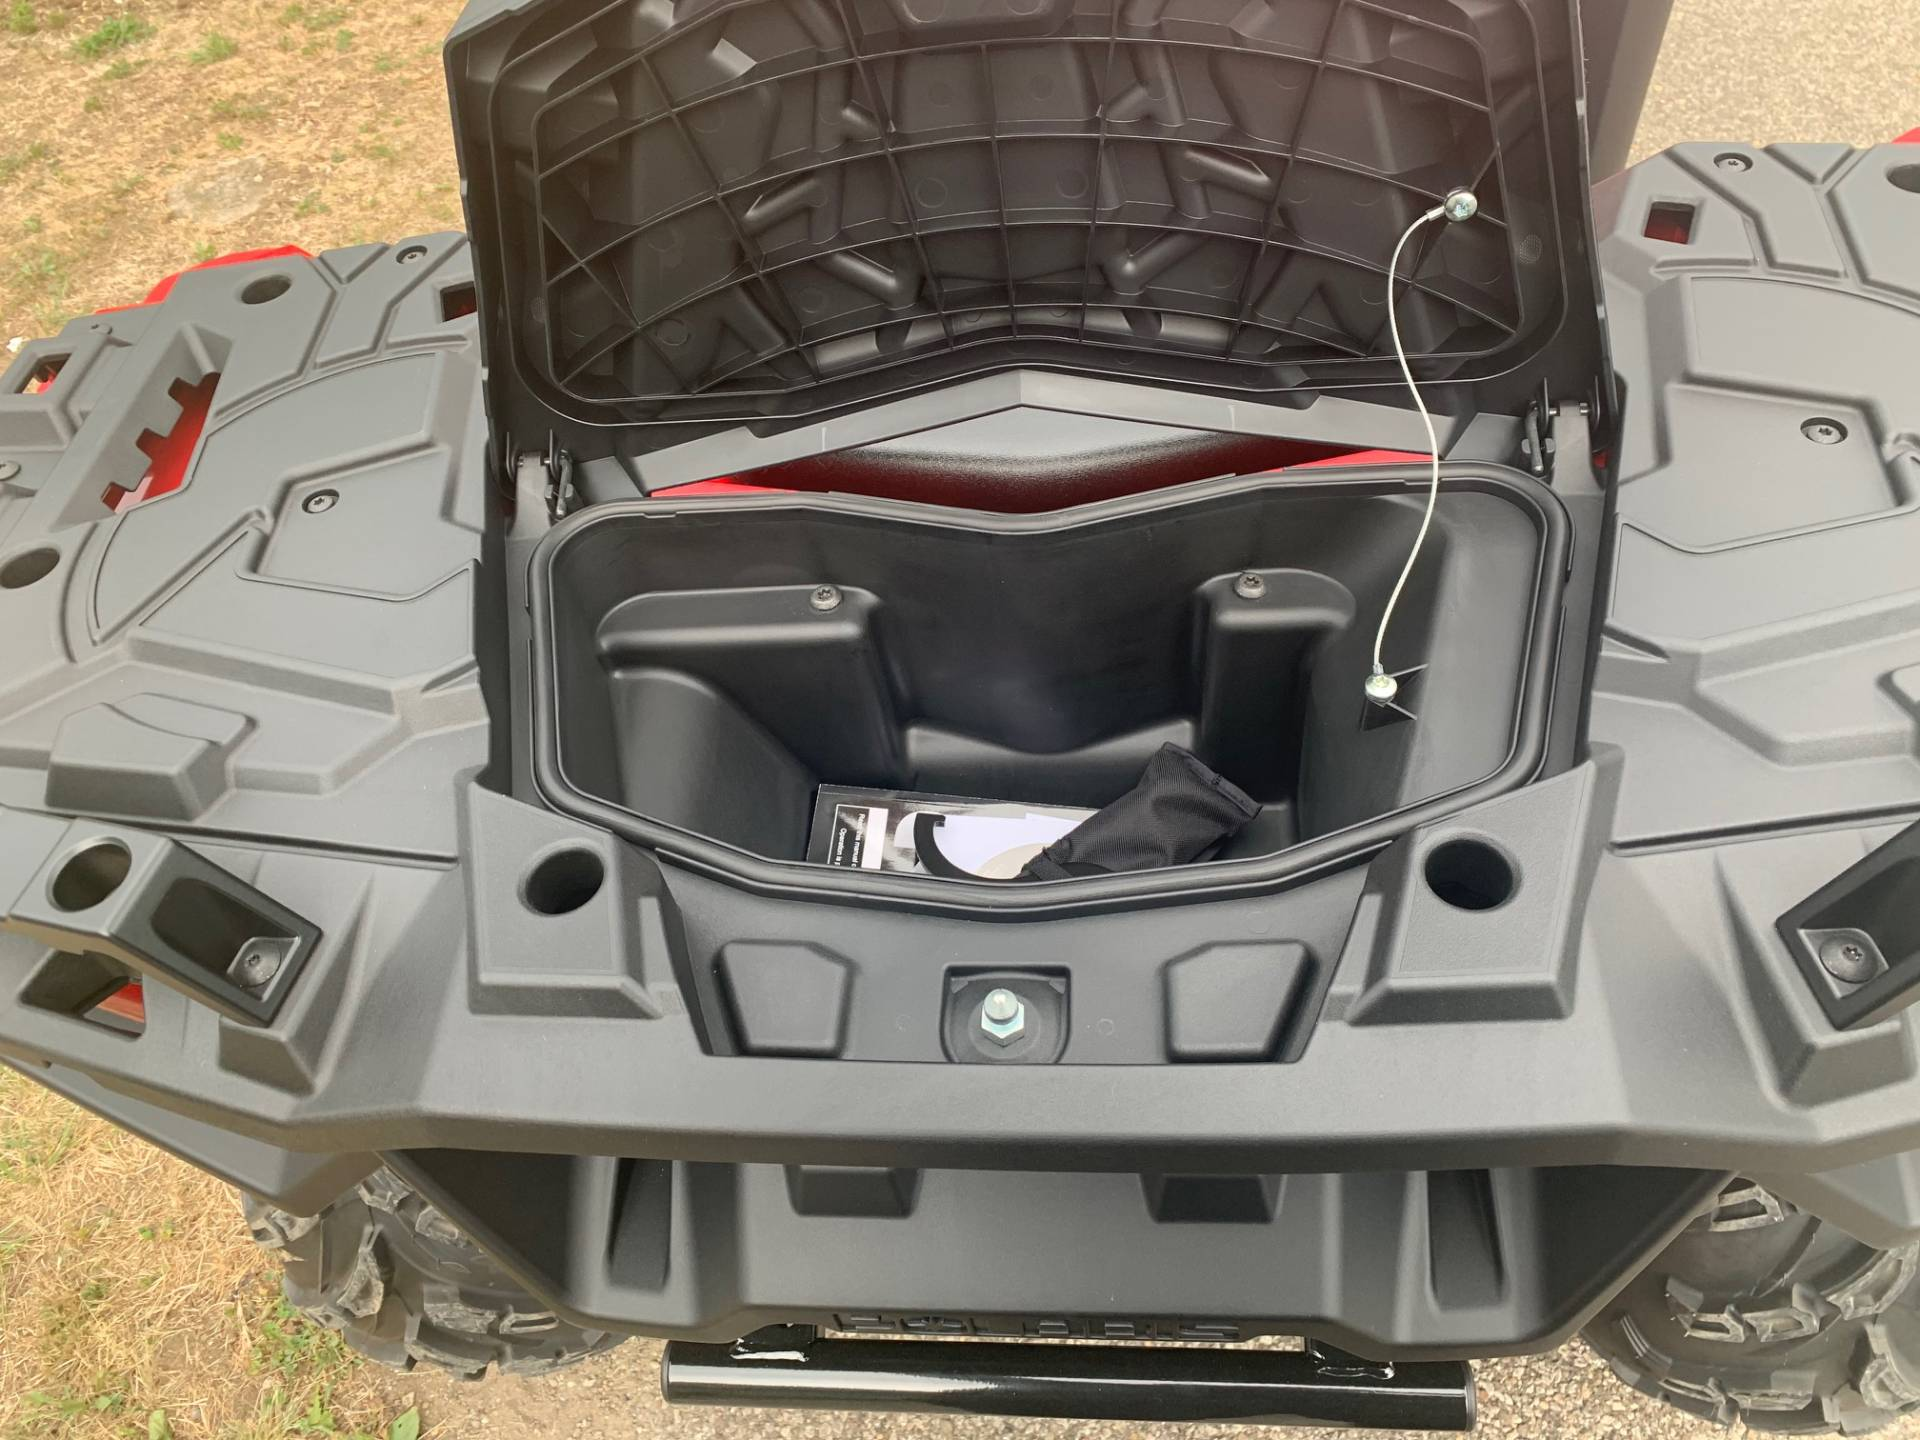 2020 Polaris Sportsman 850 in Brilliant, Ohio - Photo 5